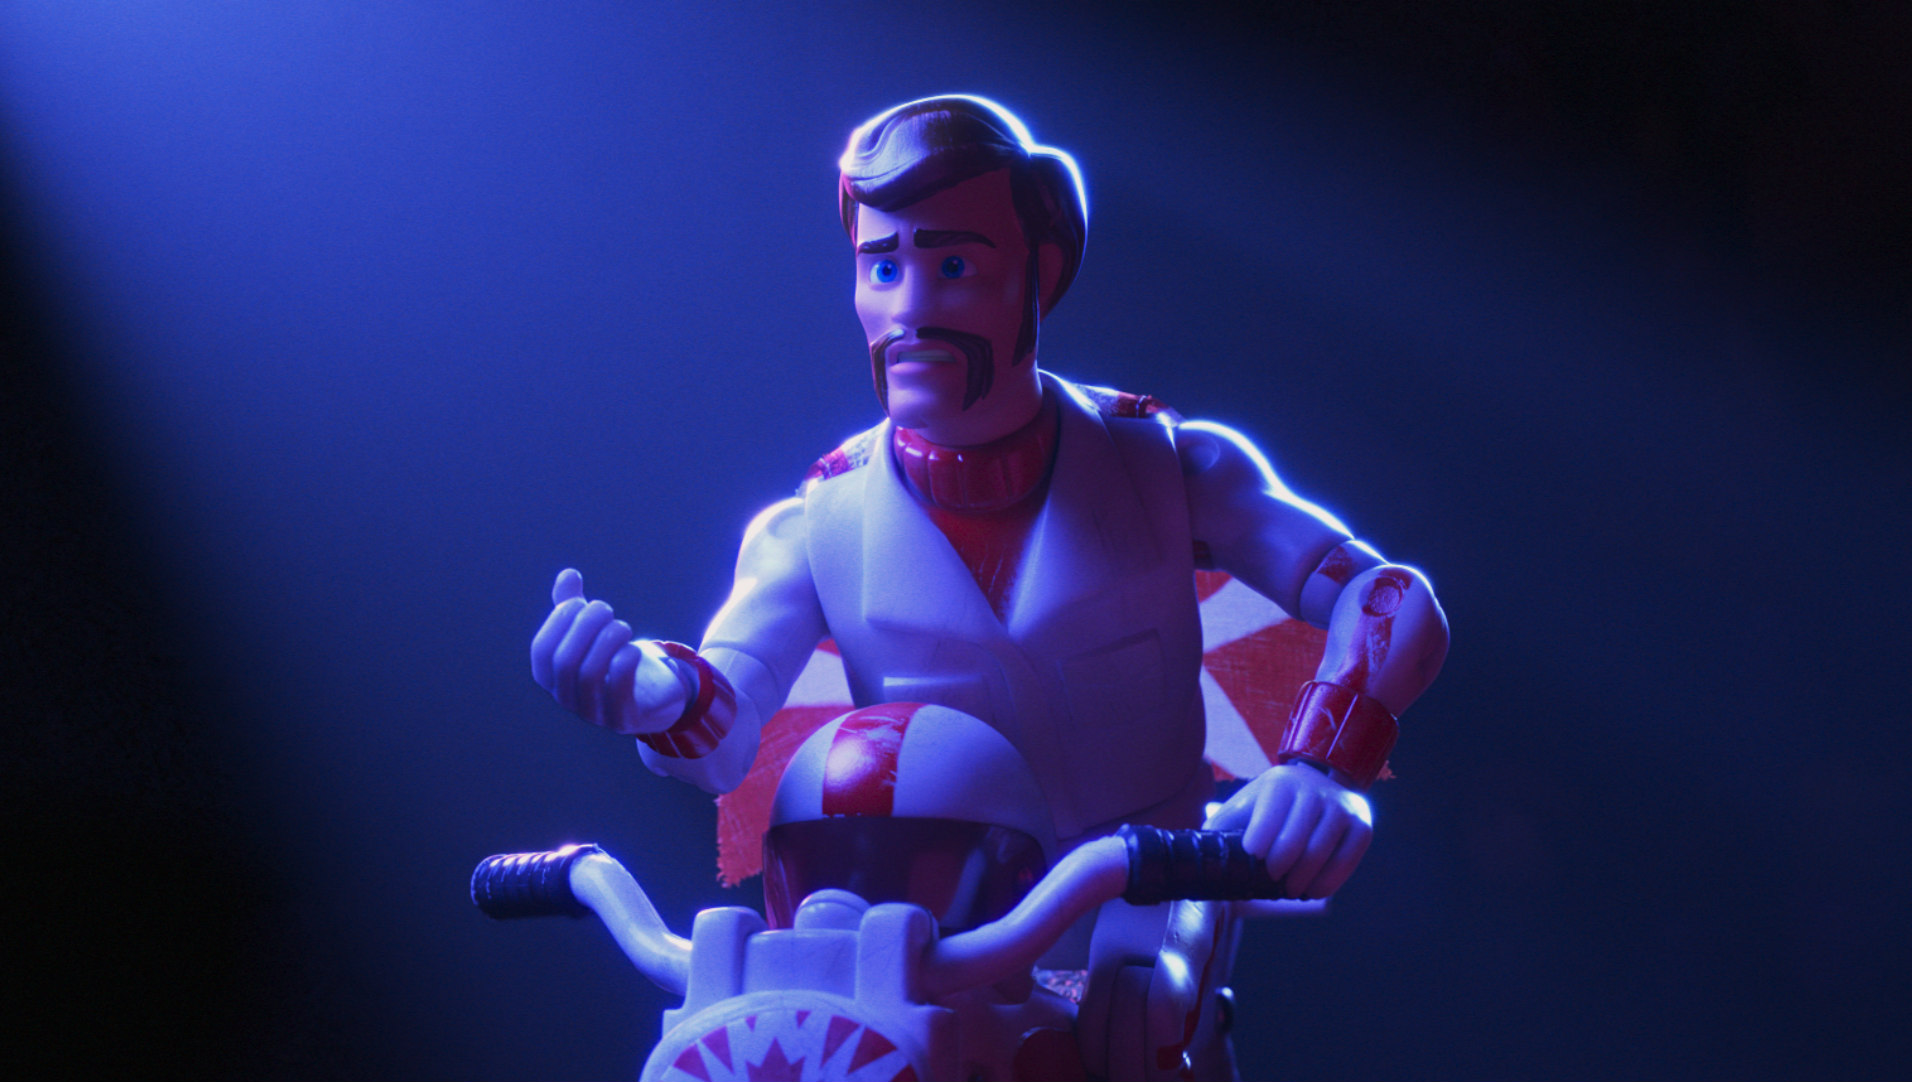 Toy Story 4 Trailer: The Gang Takes a Road Trip